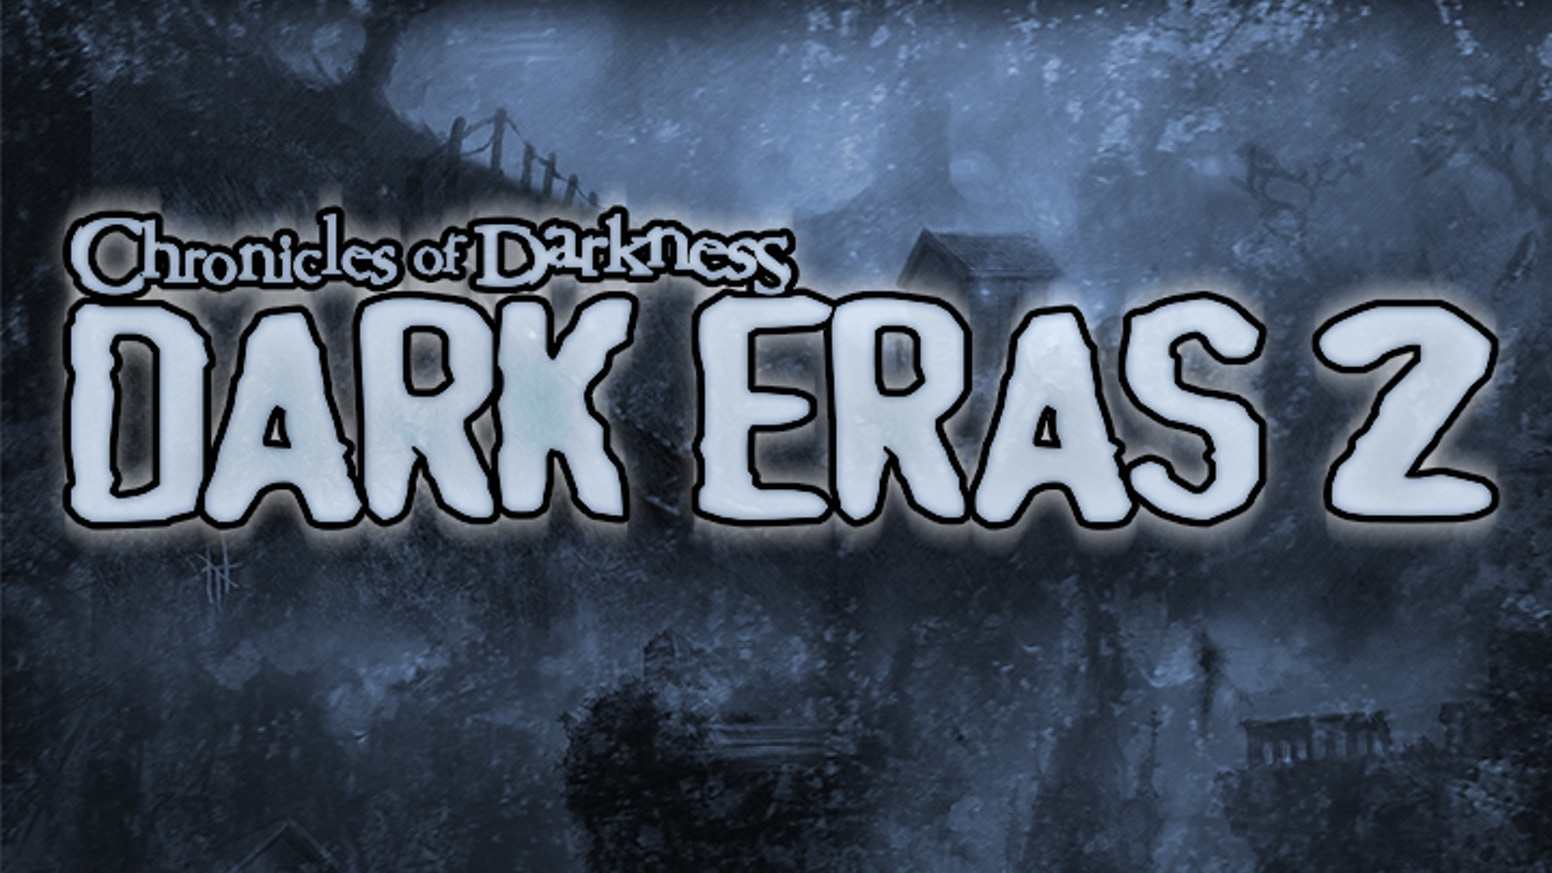 Even if you missed the Kickstarter, you can still pre-order Dark Eras 2 here: